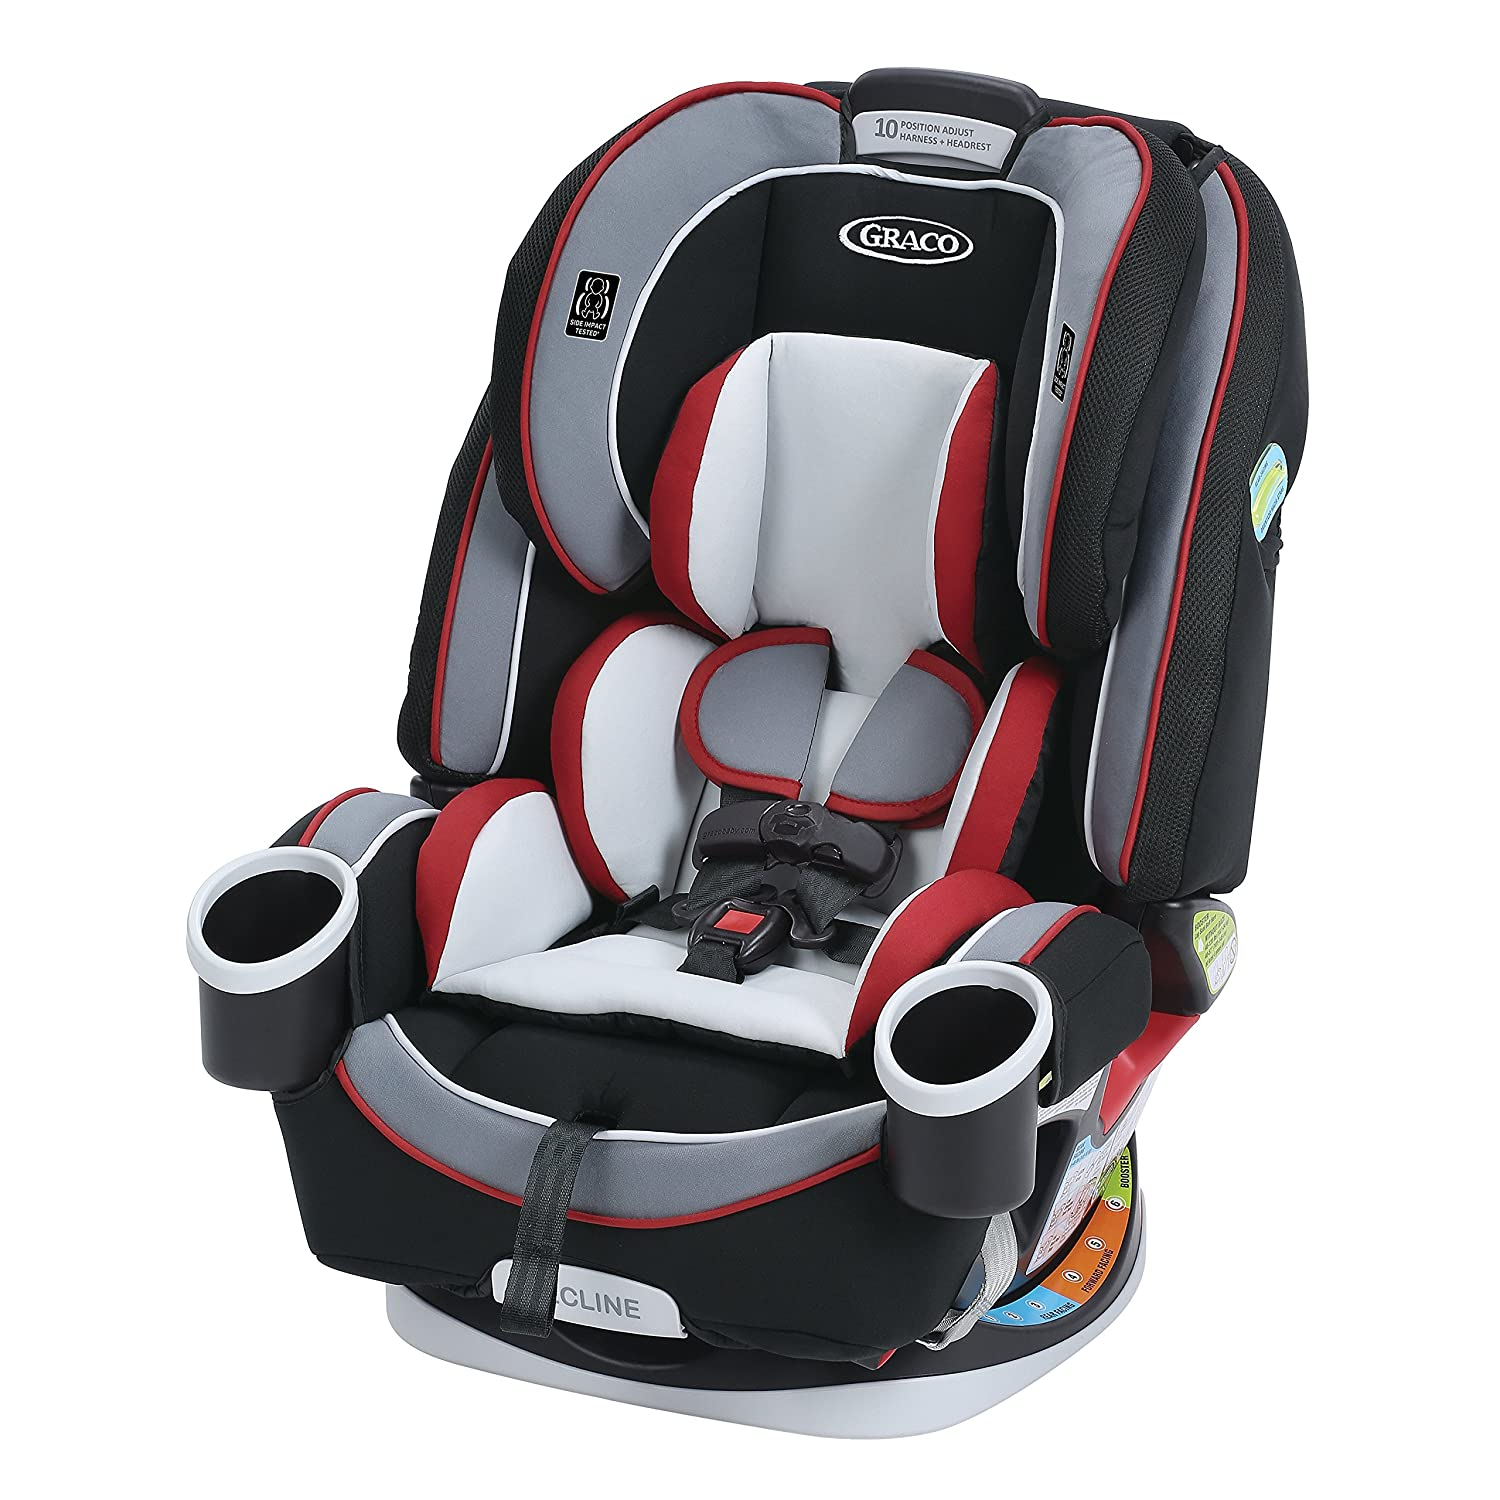 Graco 4ever 4 In 1 Convertible Car Seat Cougar